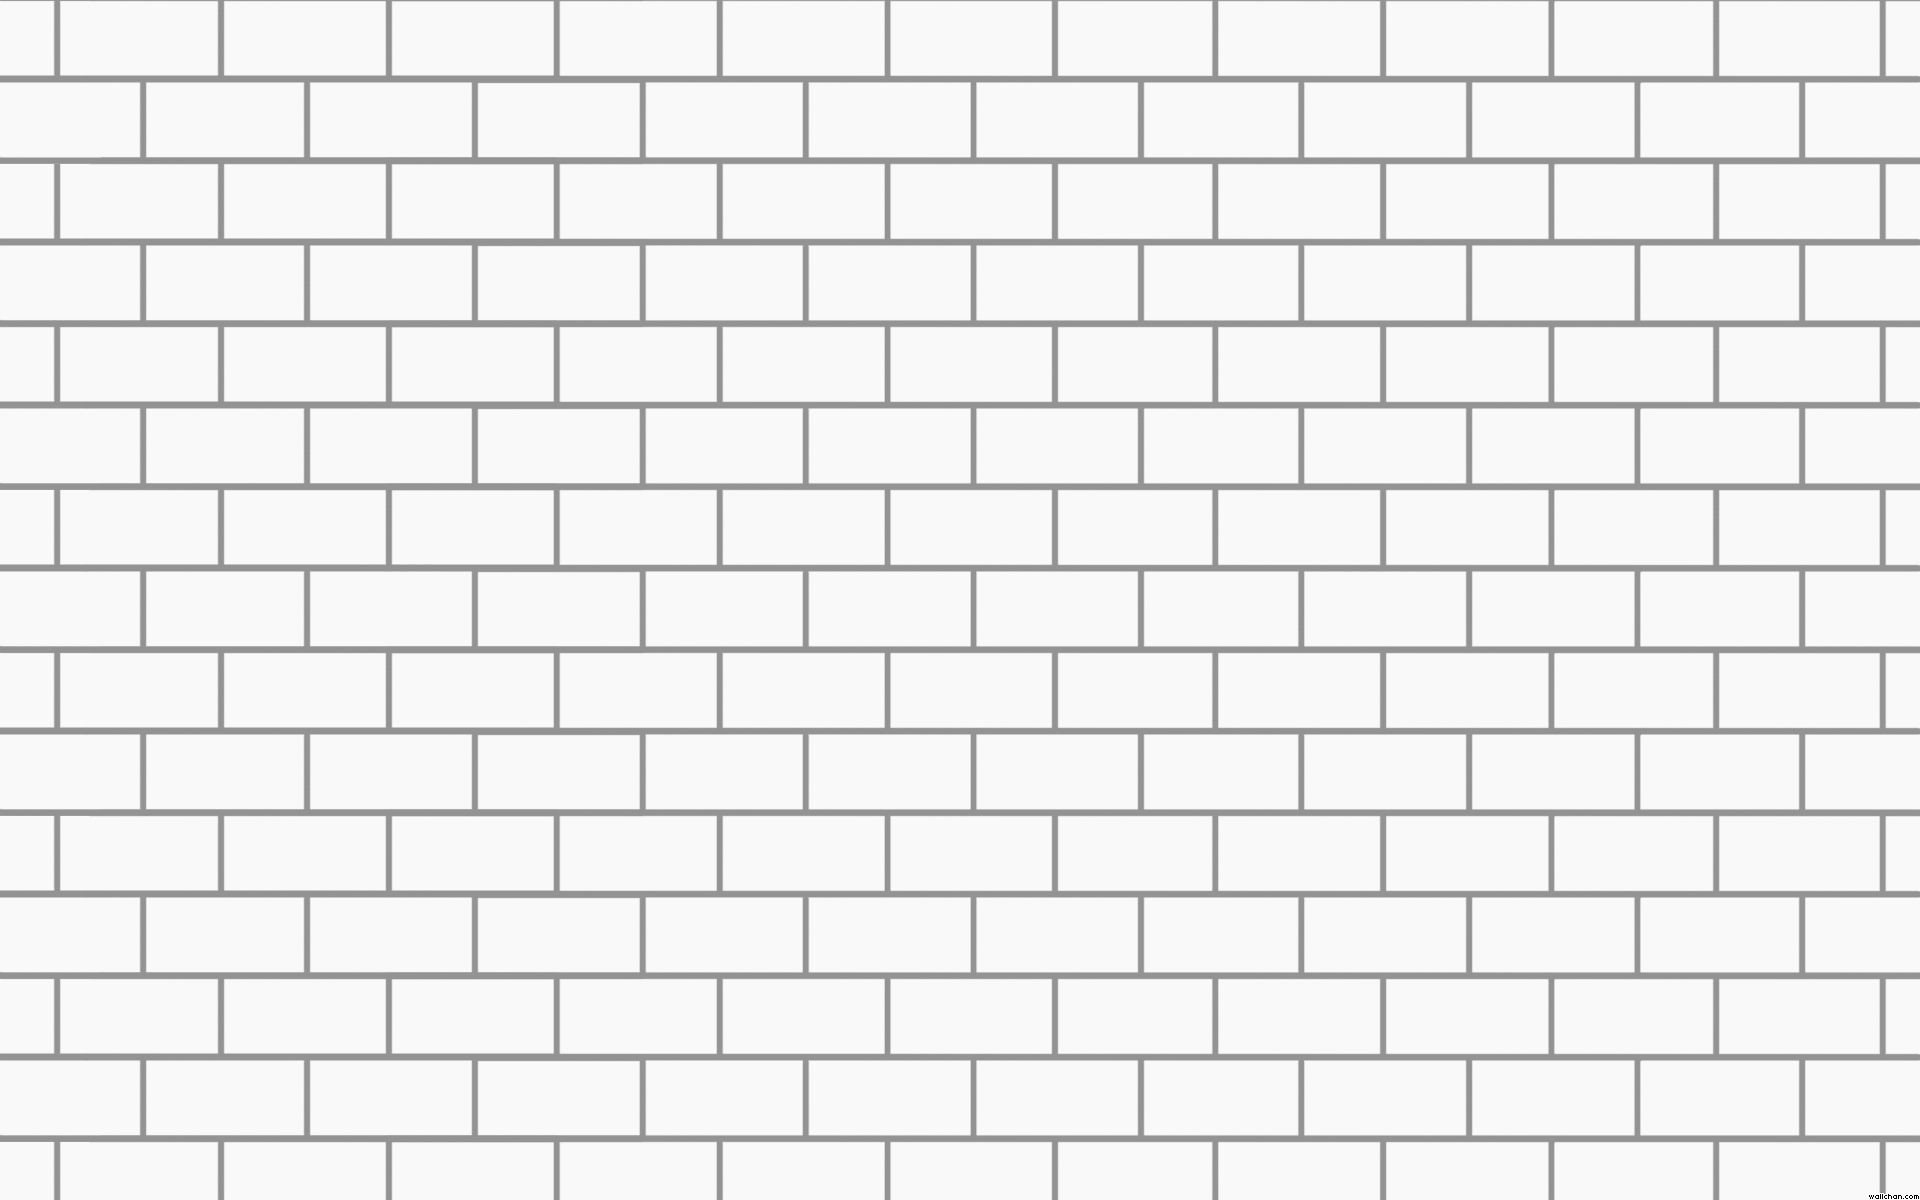 Pink Floyd The Wall Wallpaper (75+ Images